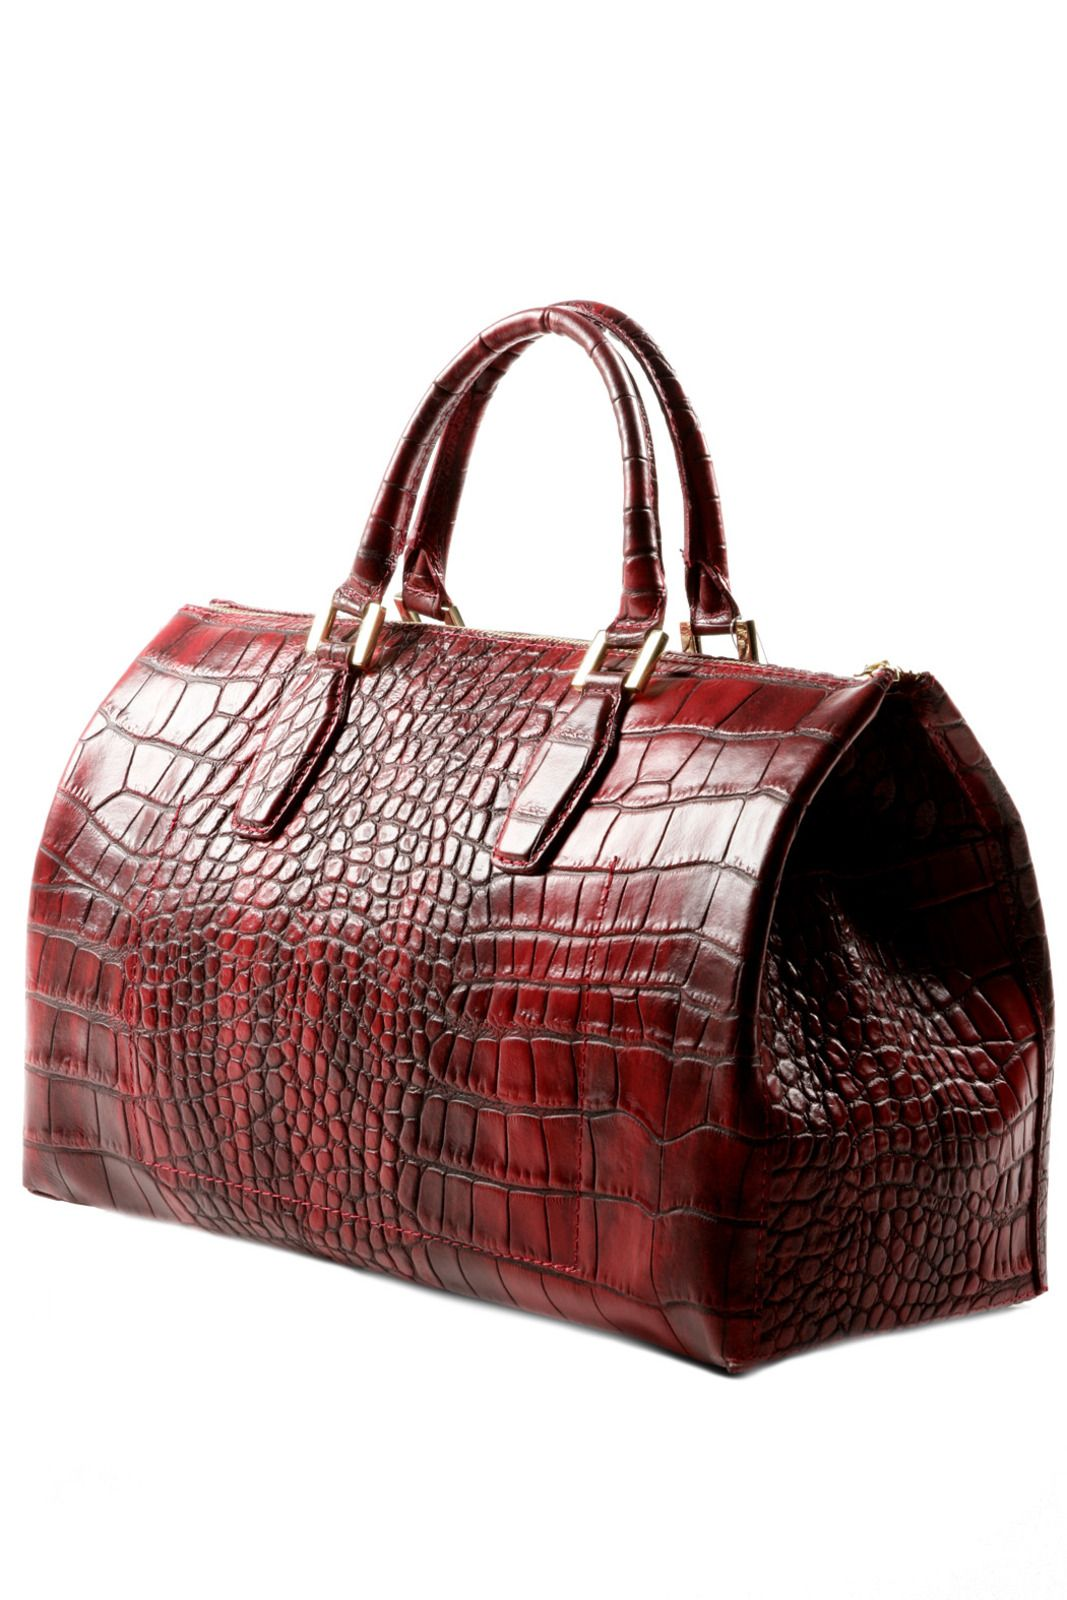 Gabrielle S Amazing Fantasy Closet Vintage Dark Ombre Red Crocodile Leather Bag